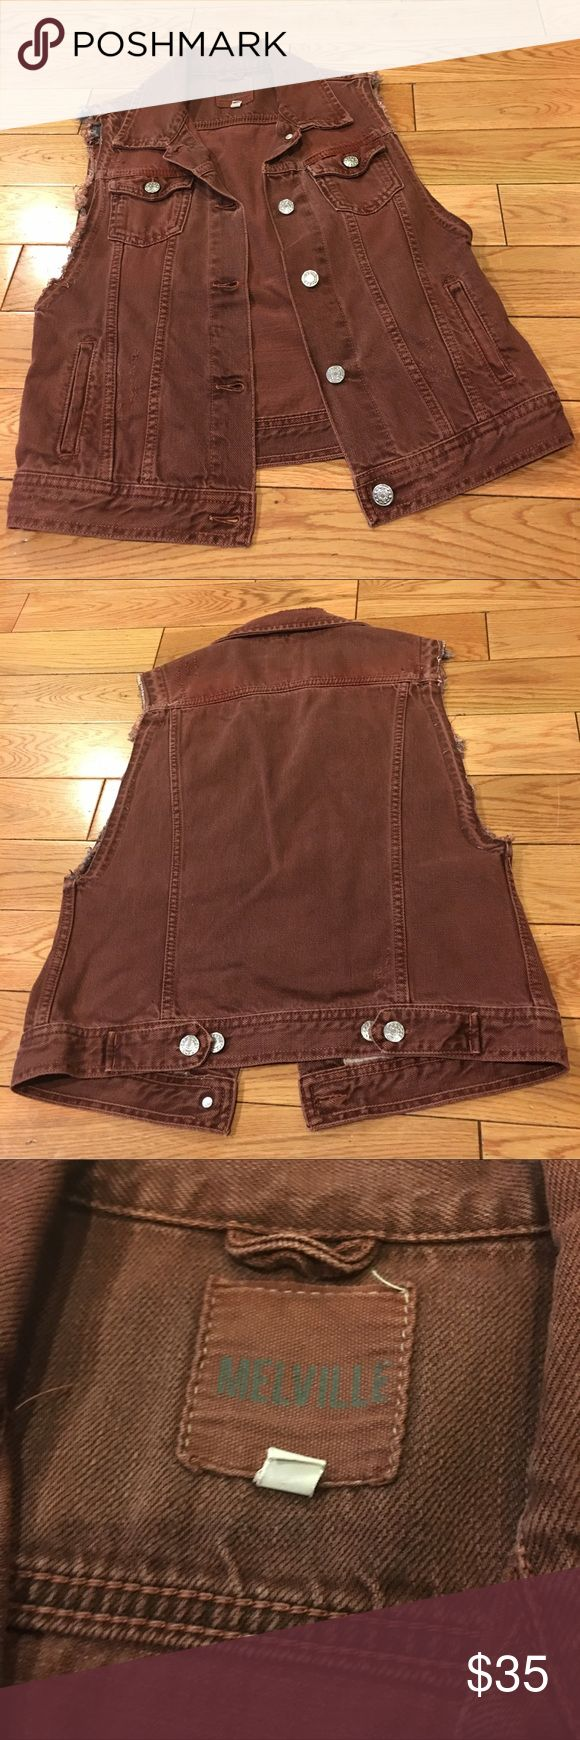 Brandy Melville vest Pre loved Brandy Melville denim button down vest size L. Runs small. Brandy Melville Jackets & Coats Vests